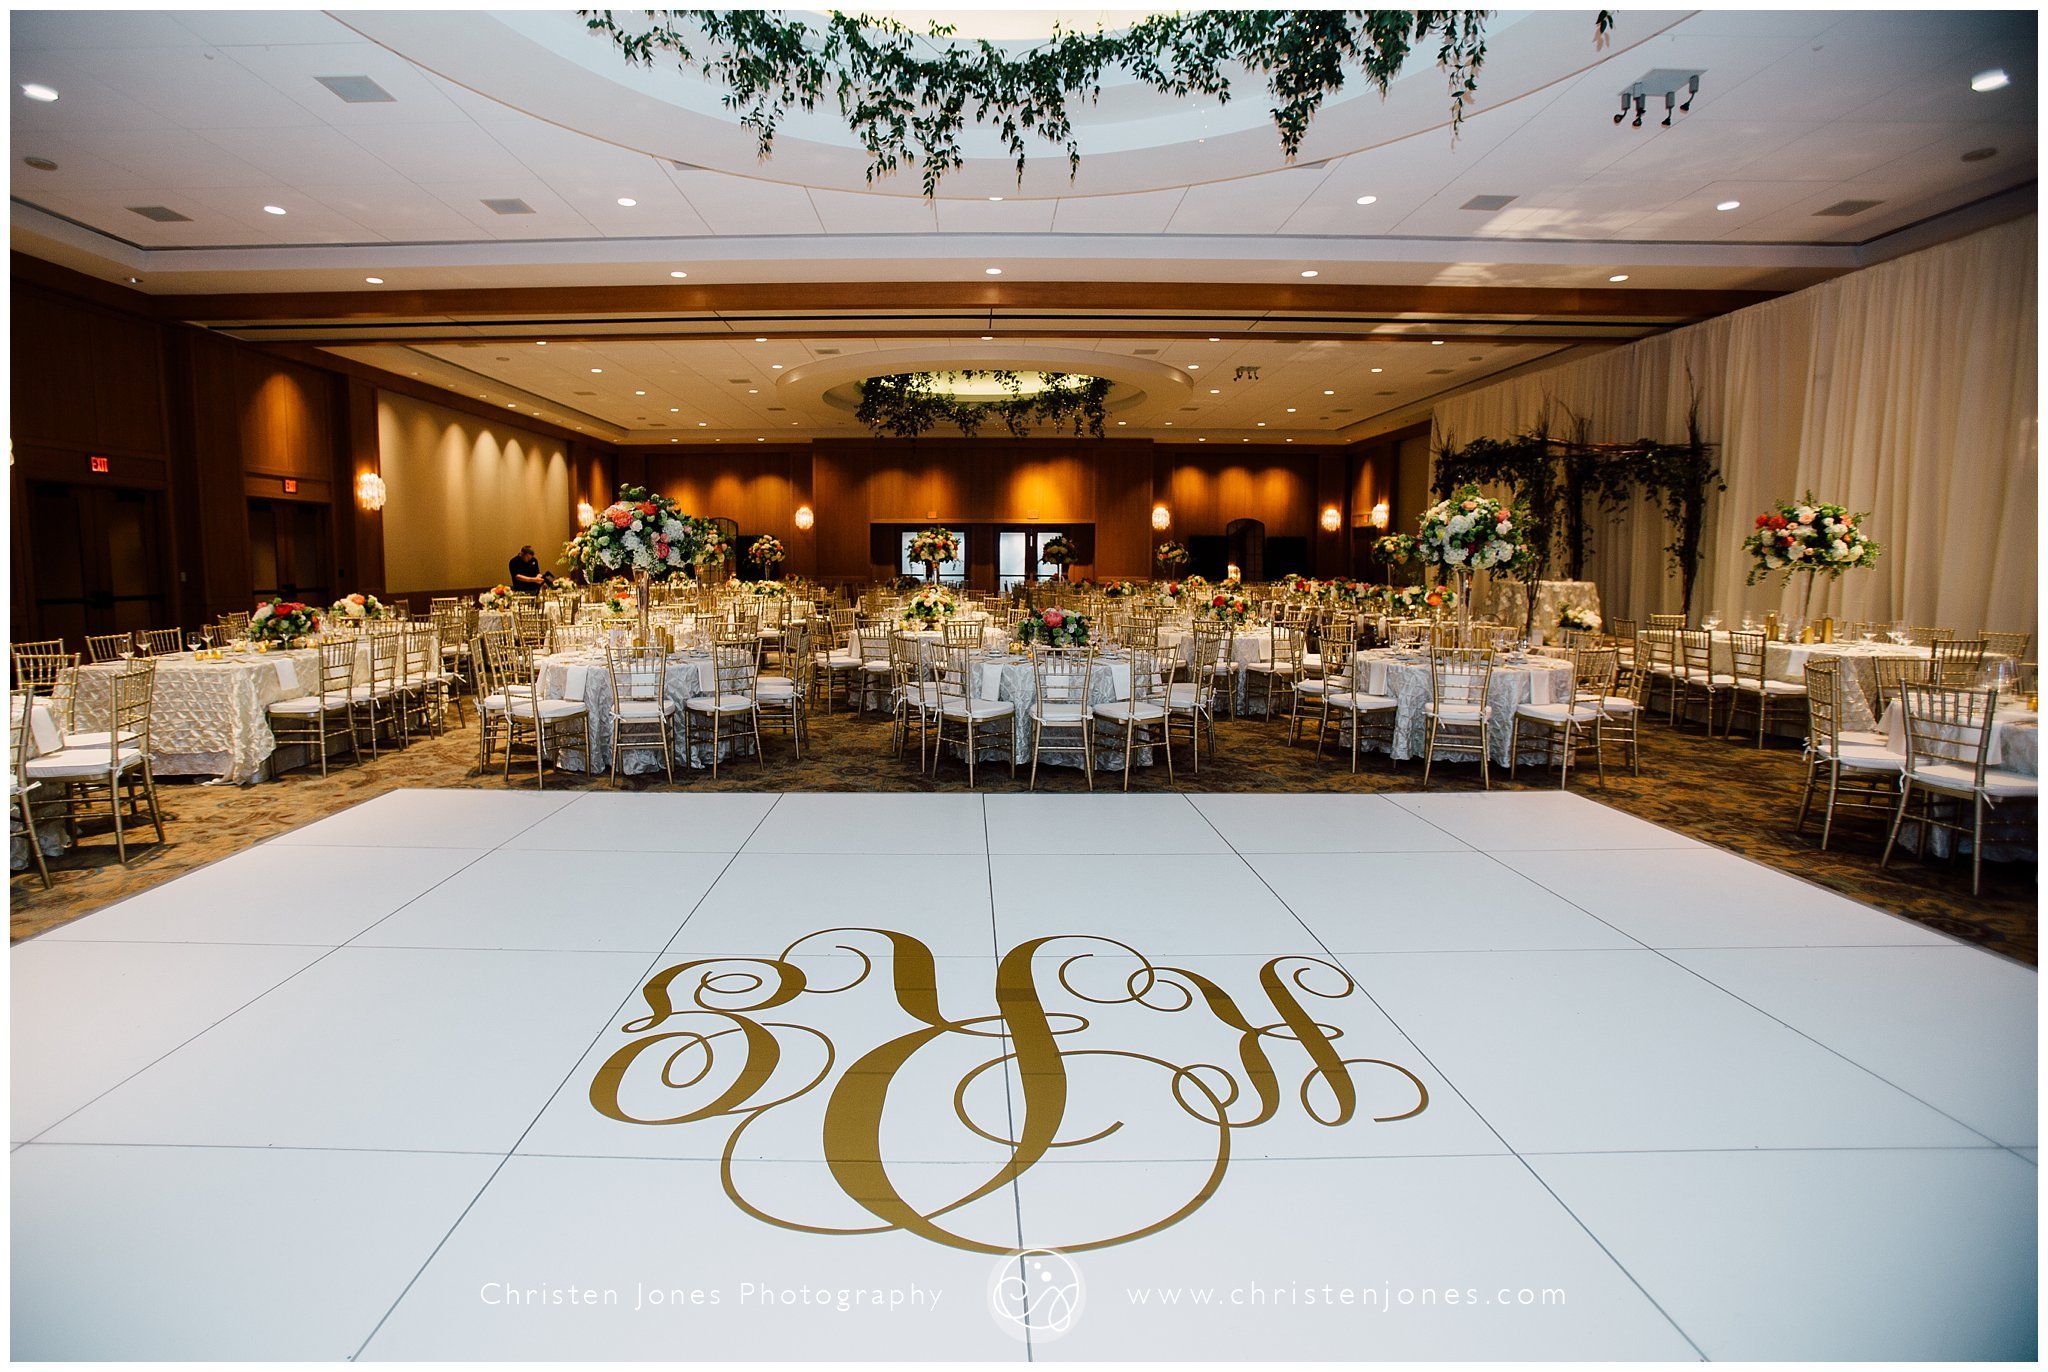 Temple Israel Memphis Wedding Venue Reception Shindigs By Sheril Christen Jones Photography